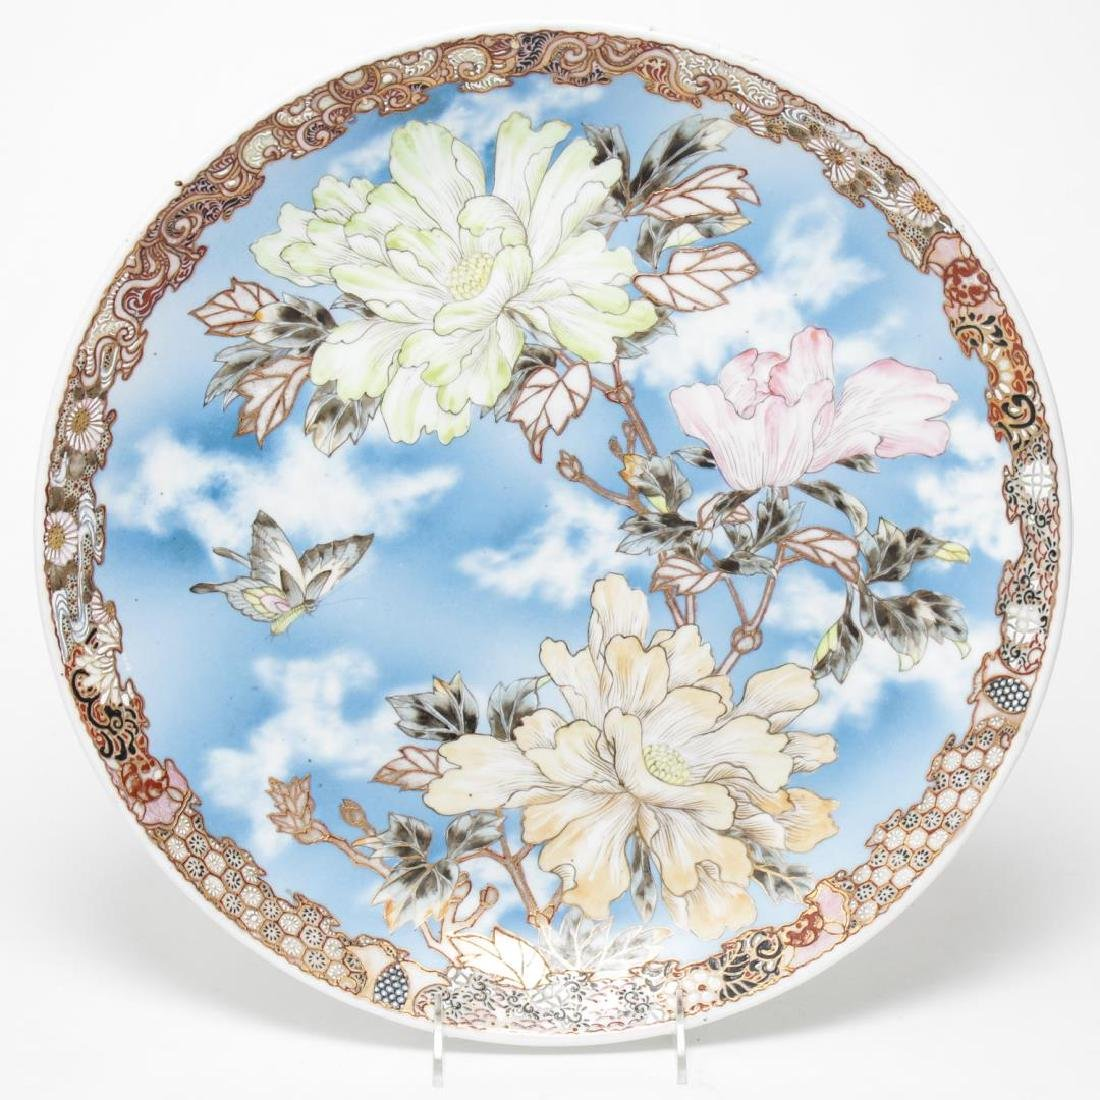 Japanese Porcelain Charger, Painted with Camellias